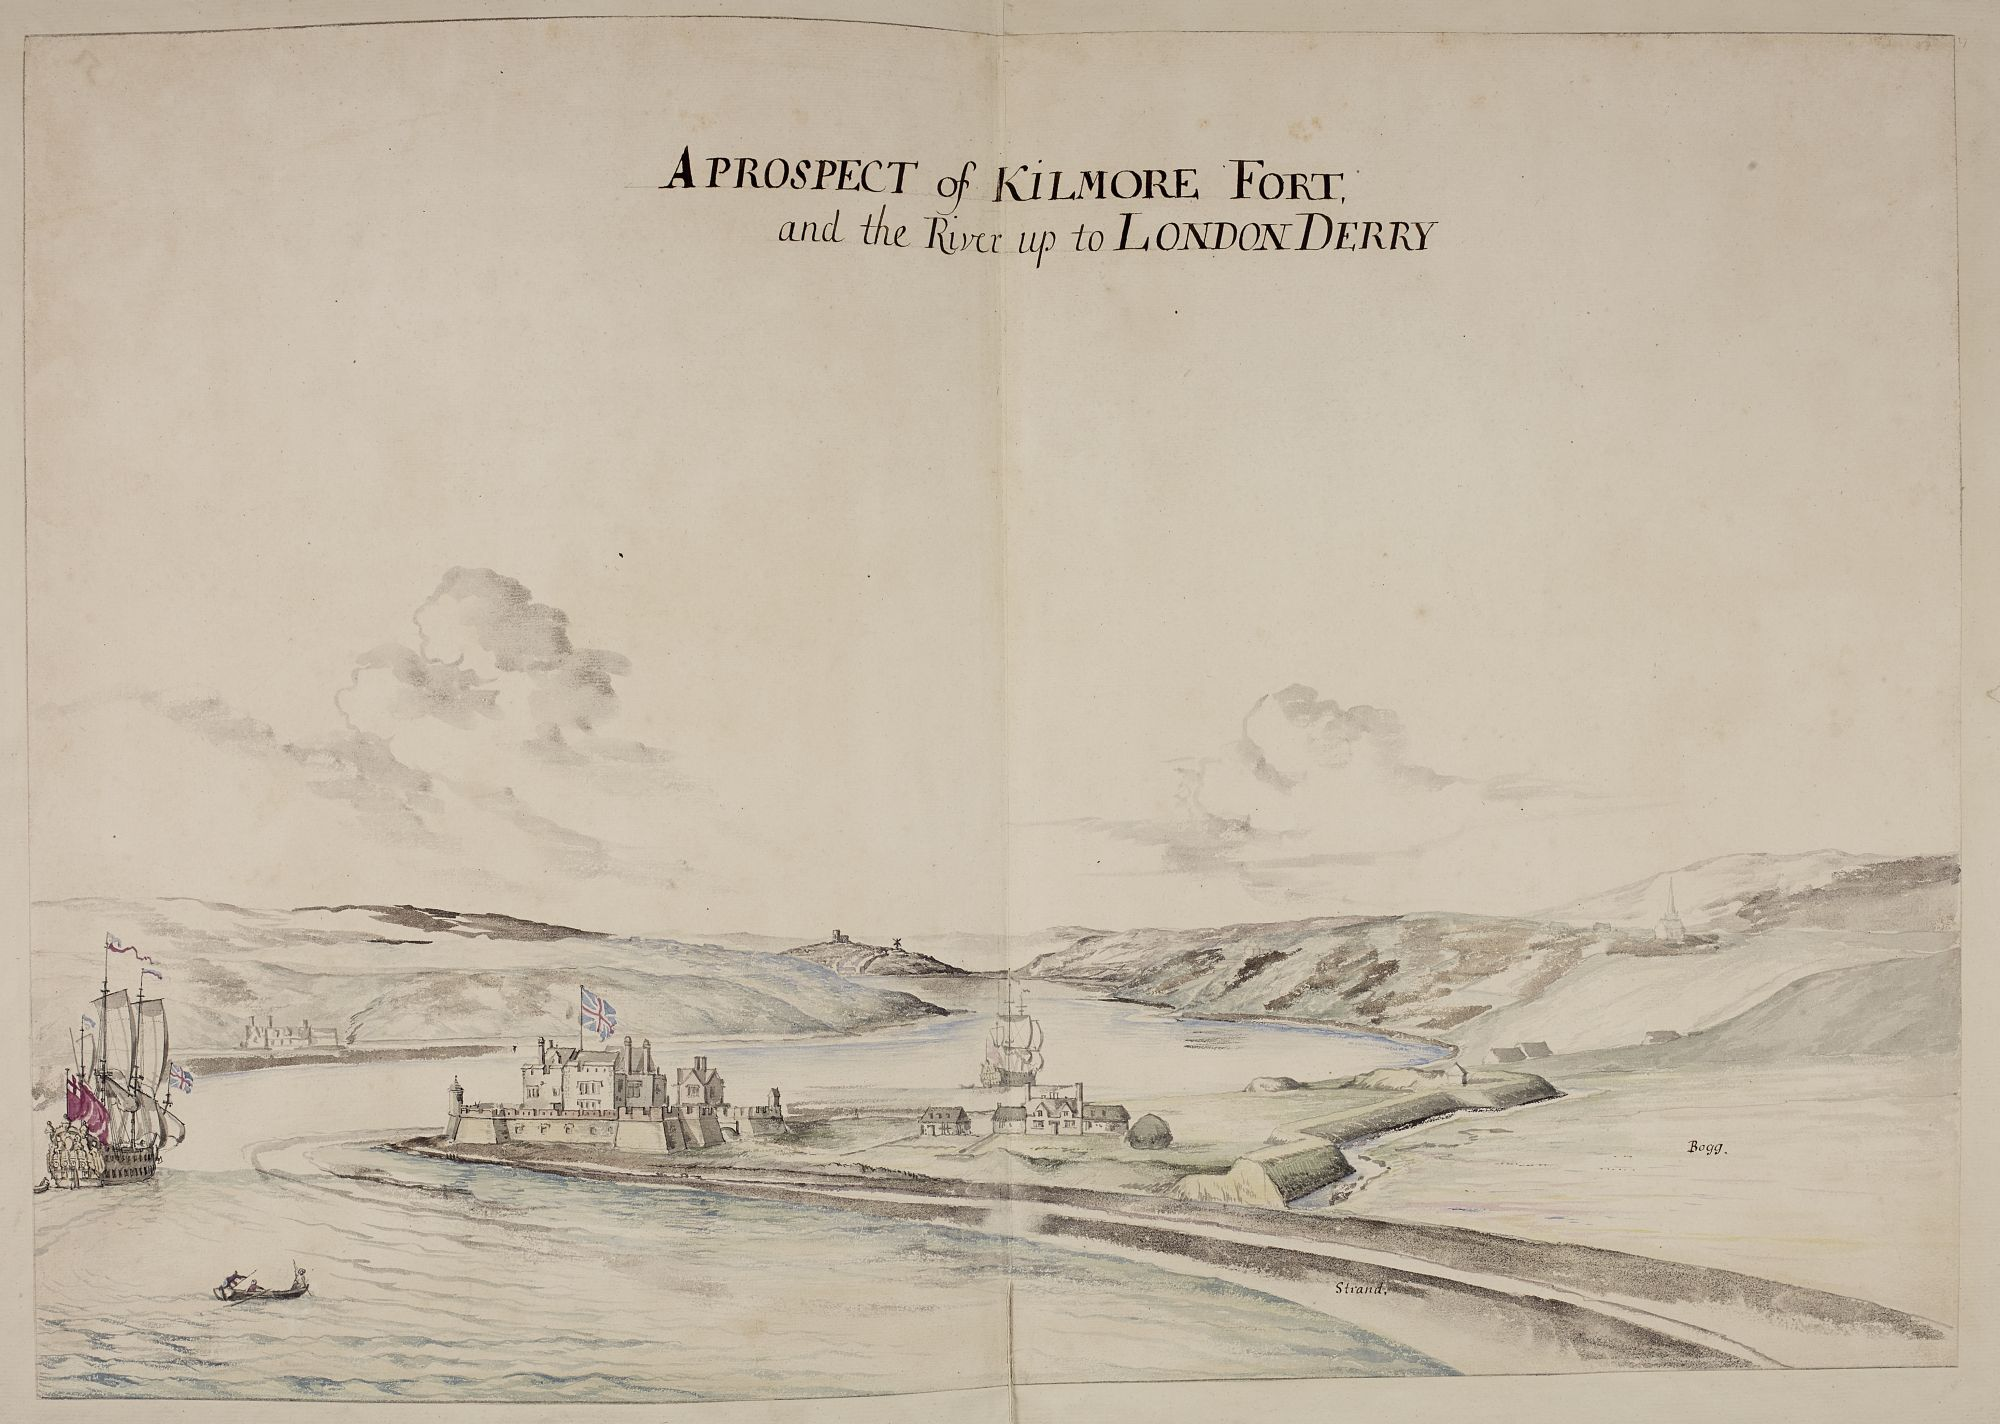 A Prospect of Kilmore Fort and the River up to London Derry, Anon.